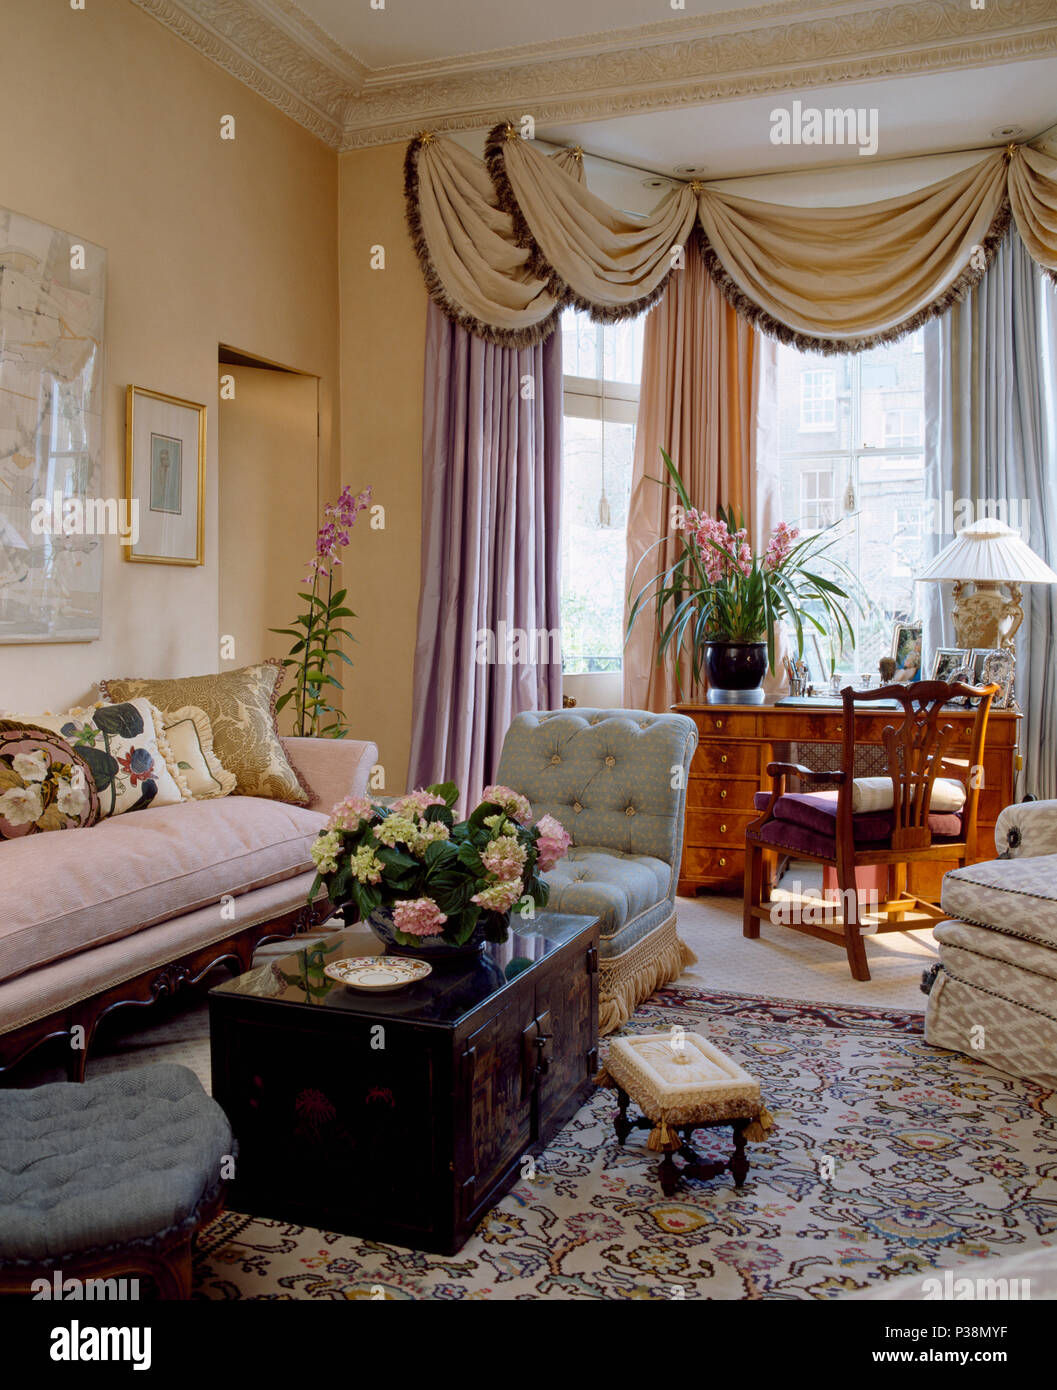 Swagged Pelmets And Silk Curtains On Bay Window In Opulent